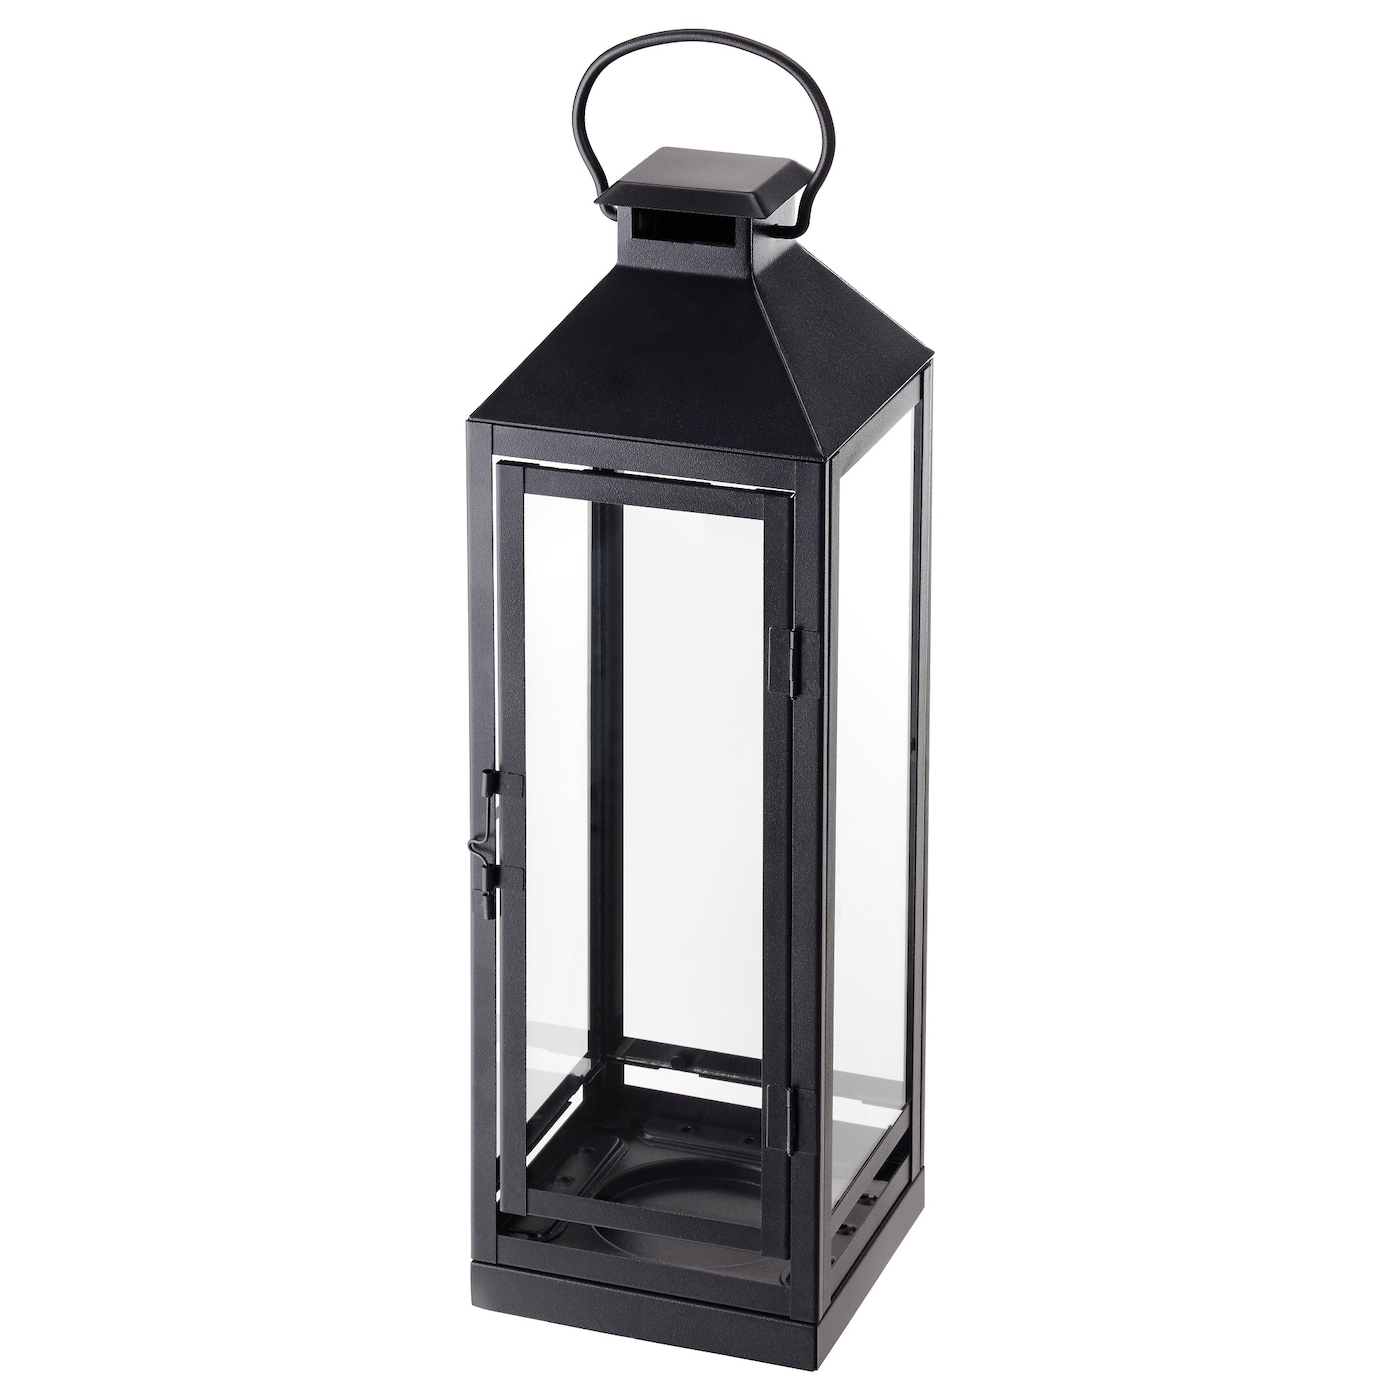 IKEA LAGRAD Lantern F Block Candle, In/outdoor Suitable For Both Indoor And  Outdoor